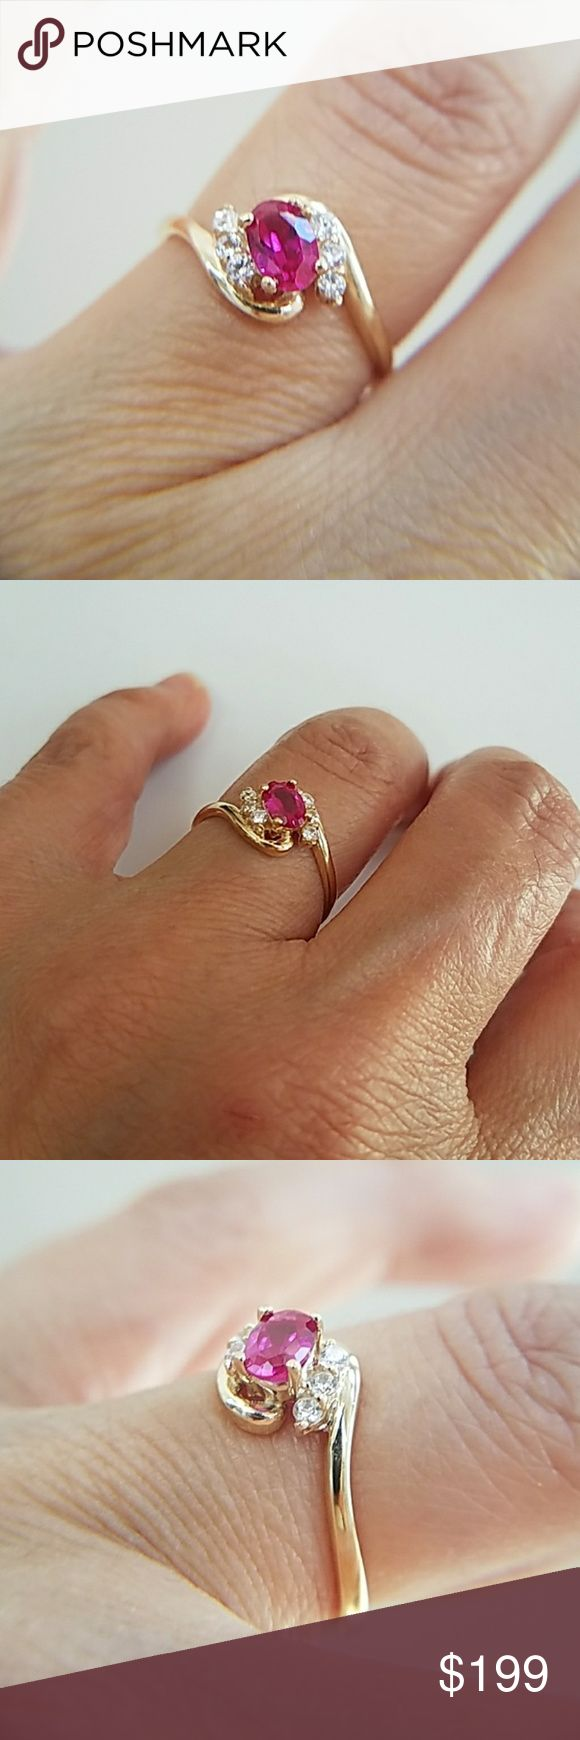 14k Yellow Gold Oval Ruby Engagement Promise Ring 14k Solid Yellow Gold Oval Synthetic Ruby Engagement Promise Ring. Available in sizes 3 4 5 6 7 8 9 10 Item#RG0330-2-62 Jewelry Rings